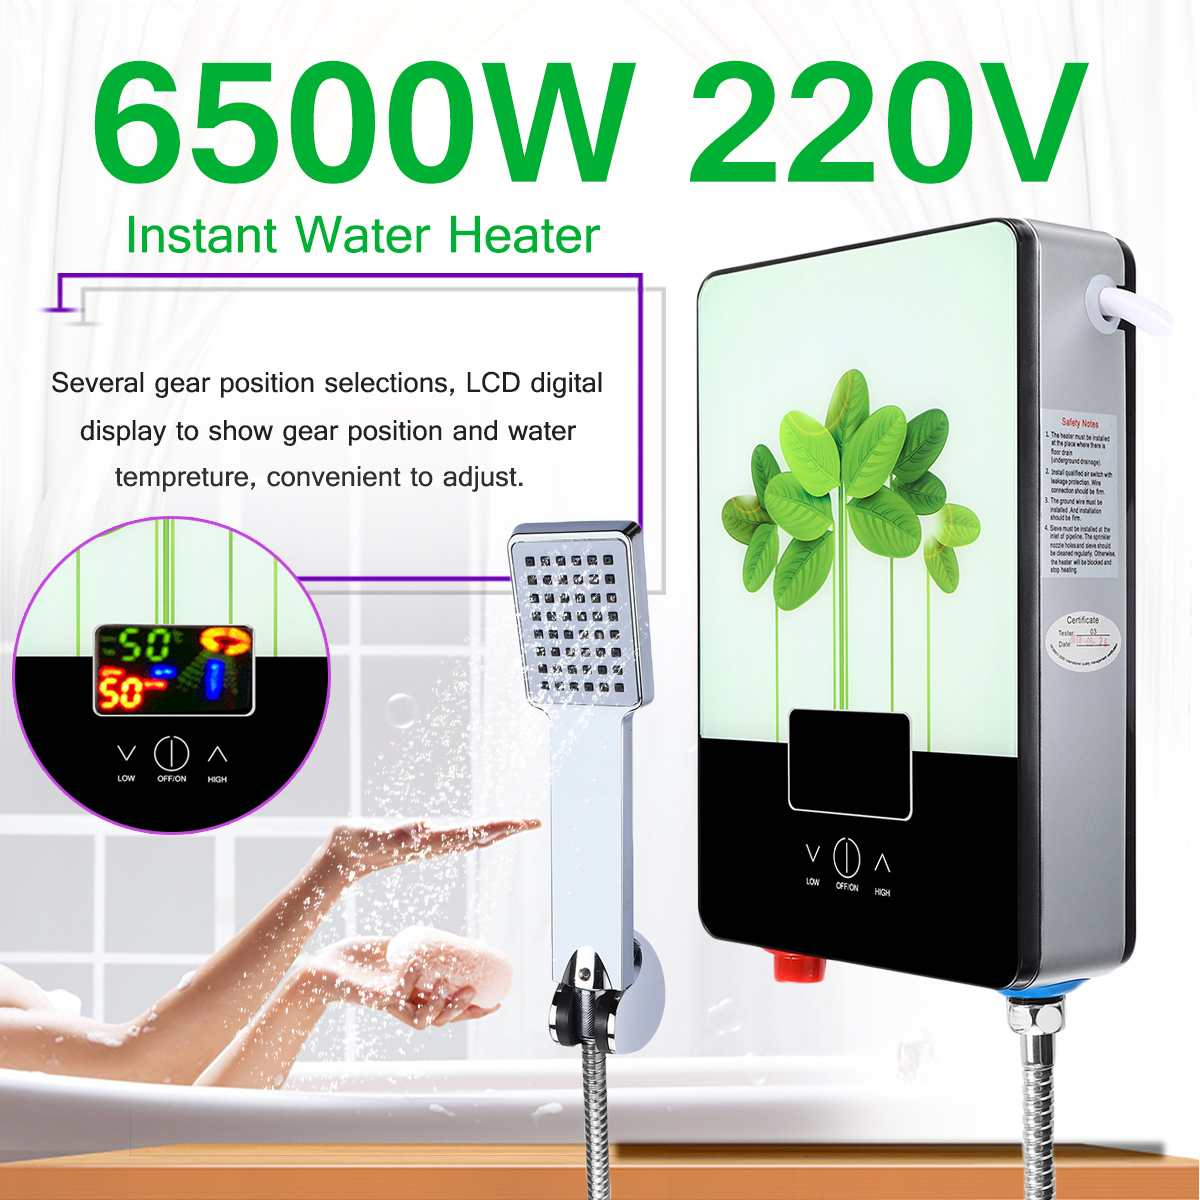 6500W 220V Electric Hot Water Heater Tankless Instant Boiler Bathroom Shower Set Thermostat Safe Intelligent Automatically